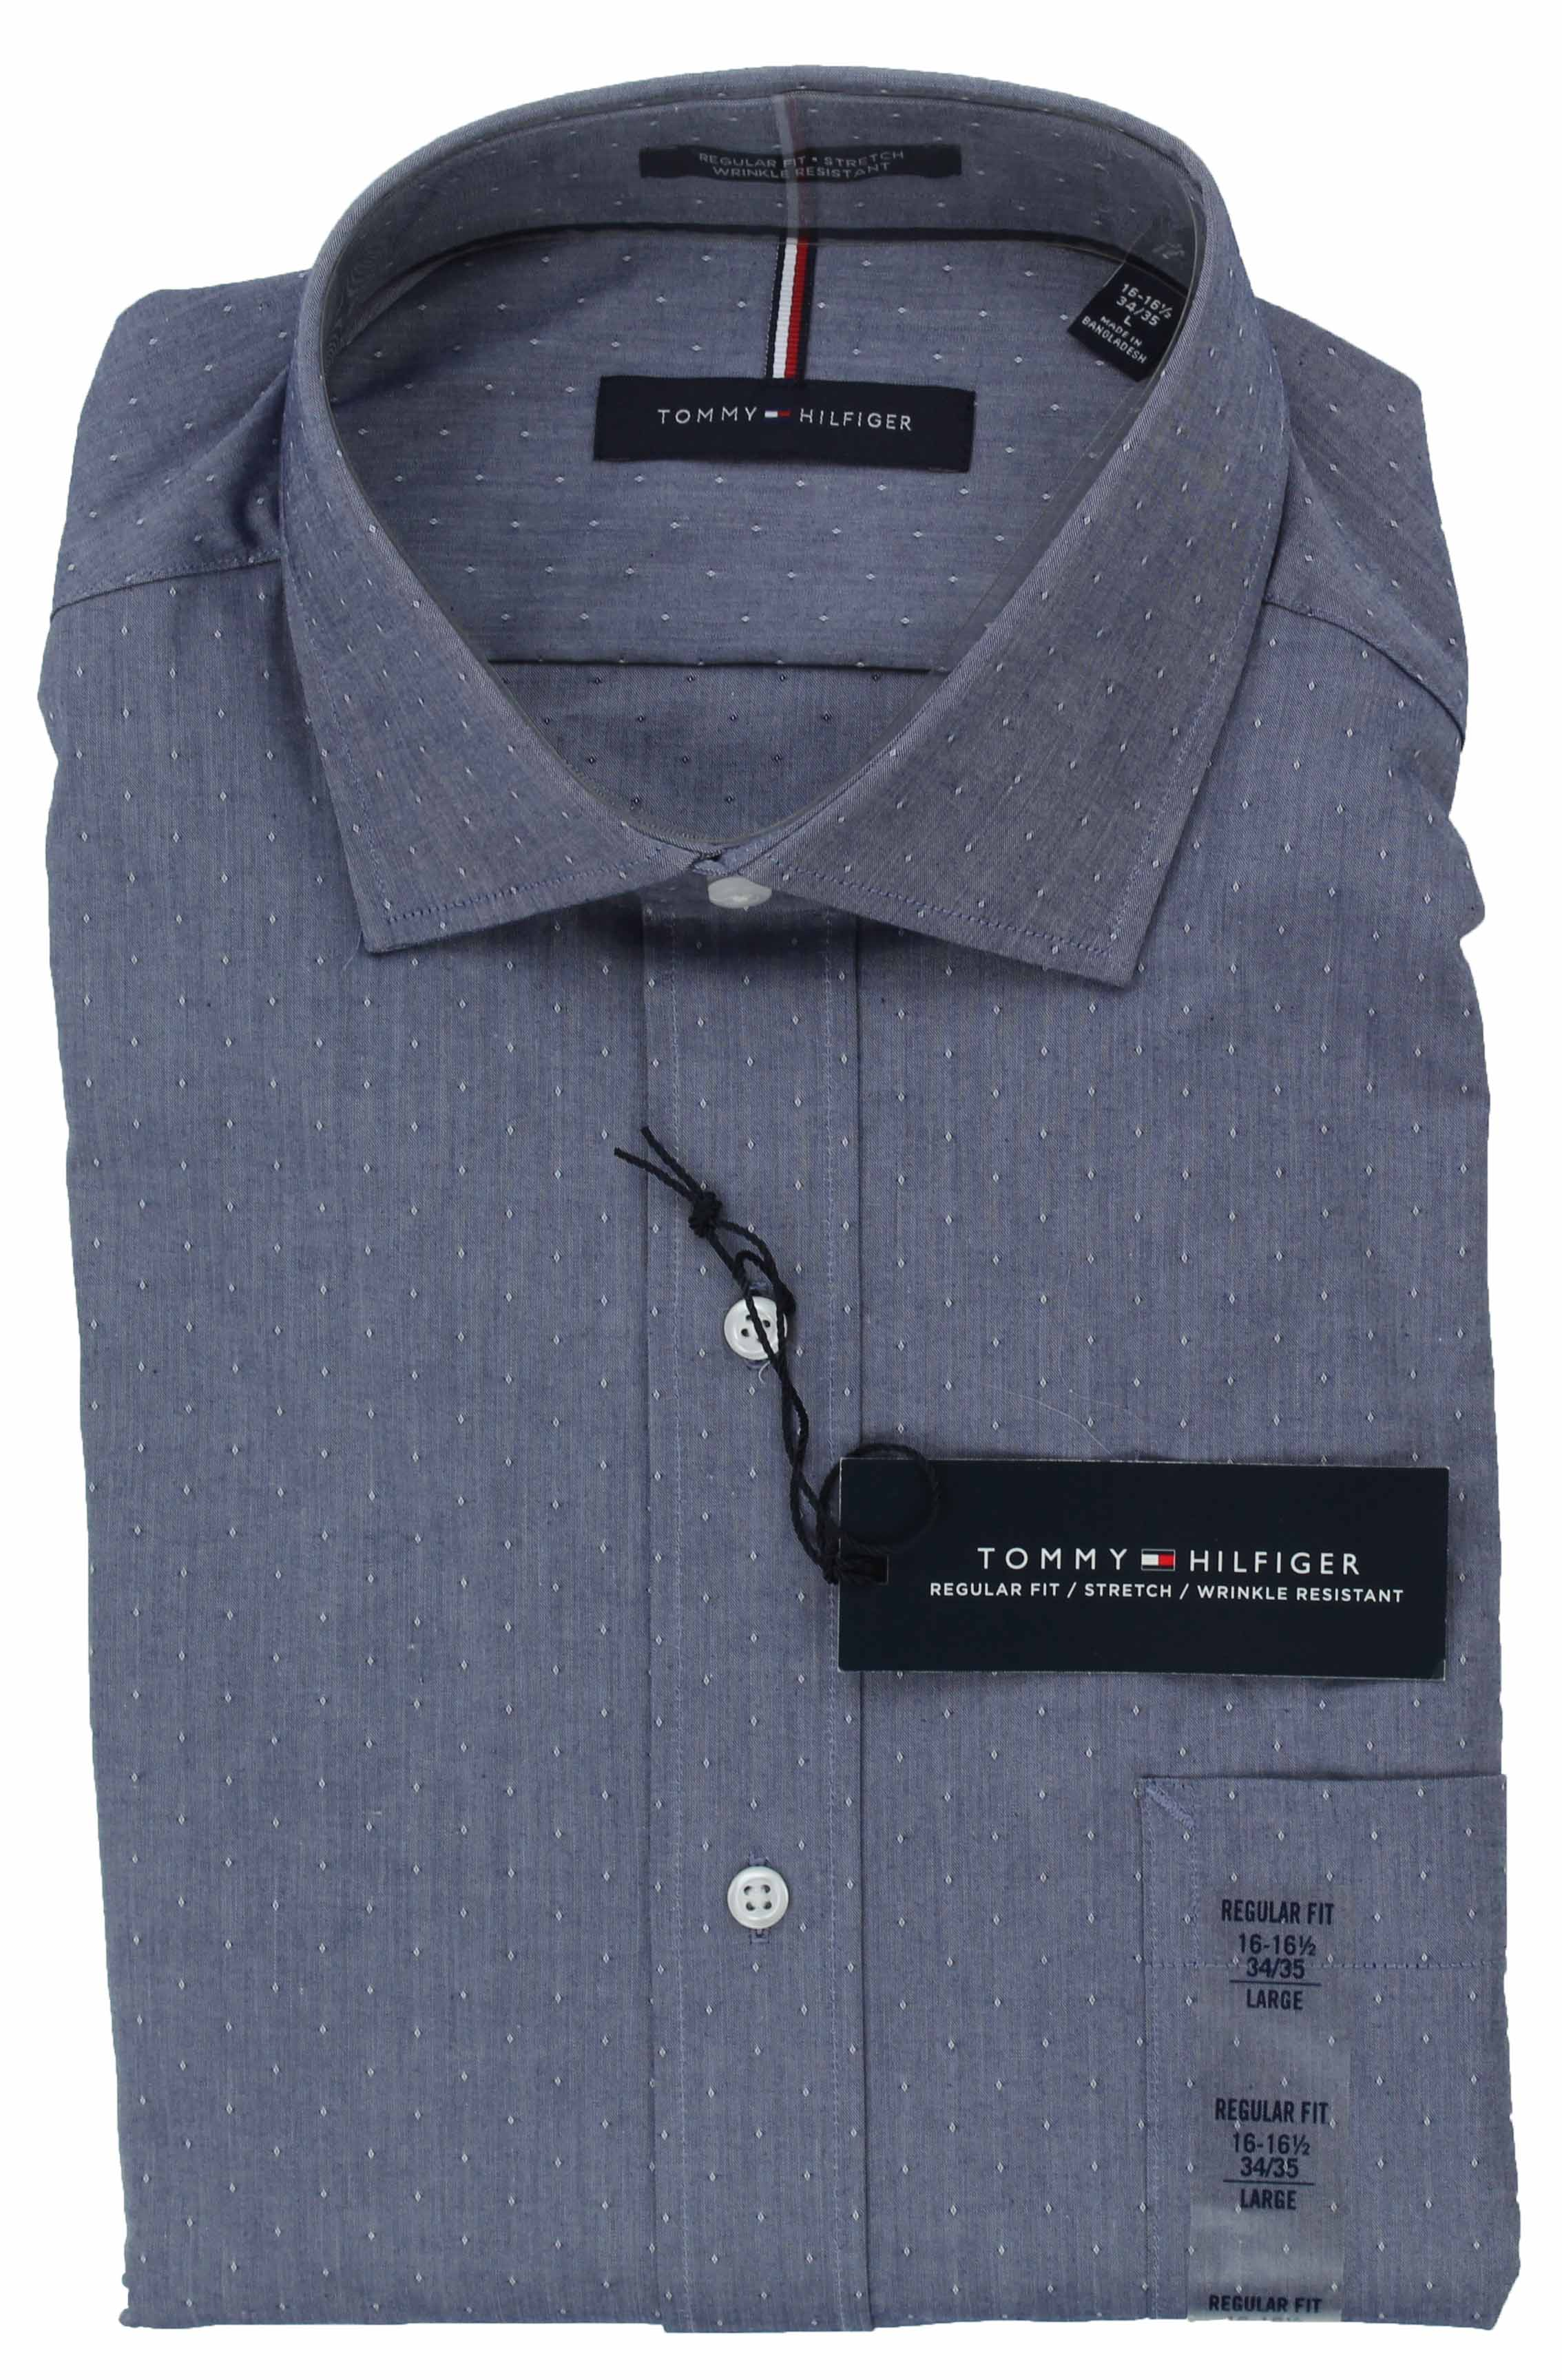 Tommy-Hilfiger-Mens-Long-Sleeve-Regular-Fit-Dress-Shirt miniature 30